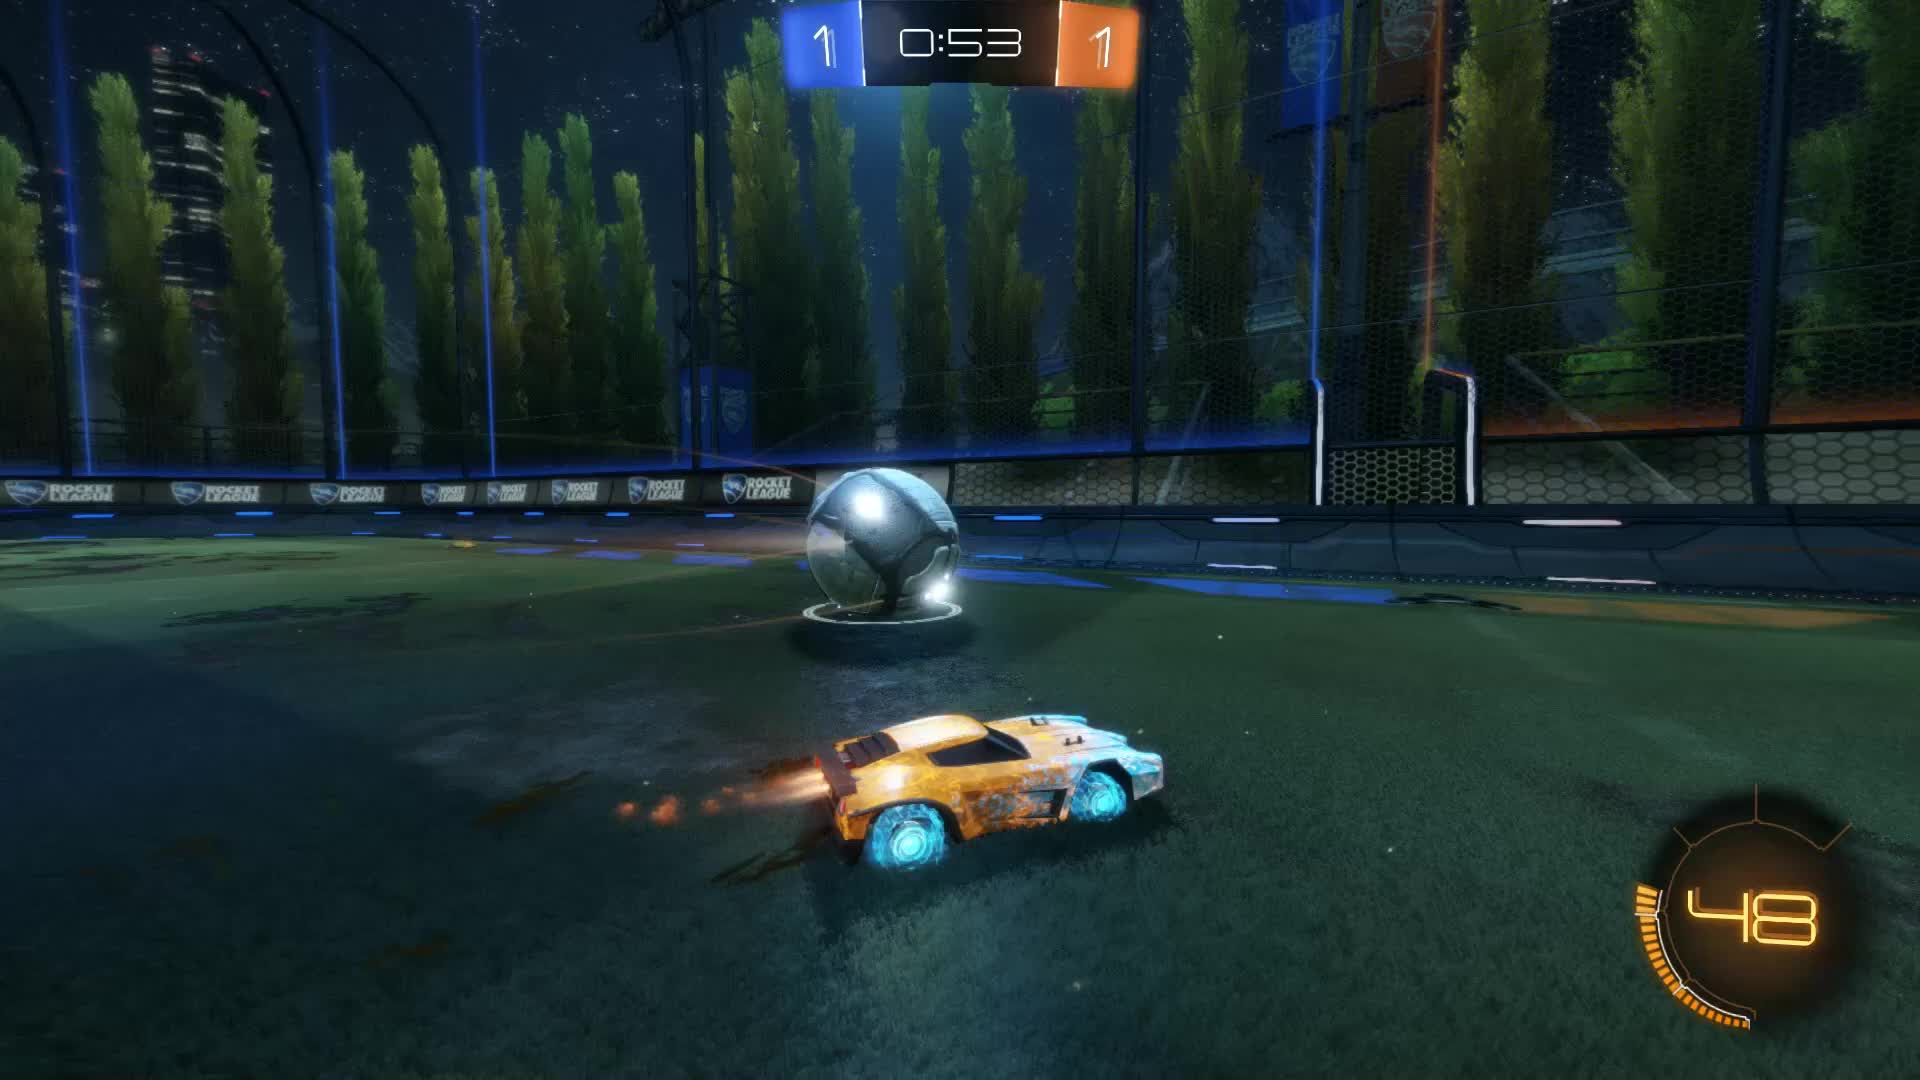 Gif Your Game, GifYourGame, Goal, Rocket League, RocketLeague, Traceur YT, Goal 3: Traceur YT GIFs